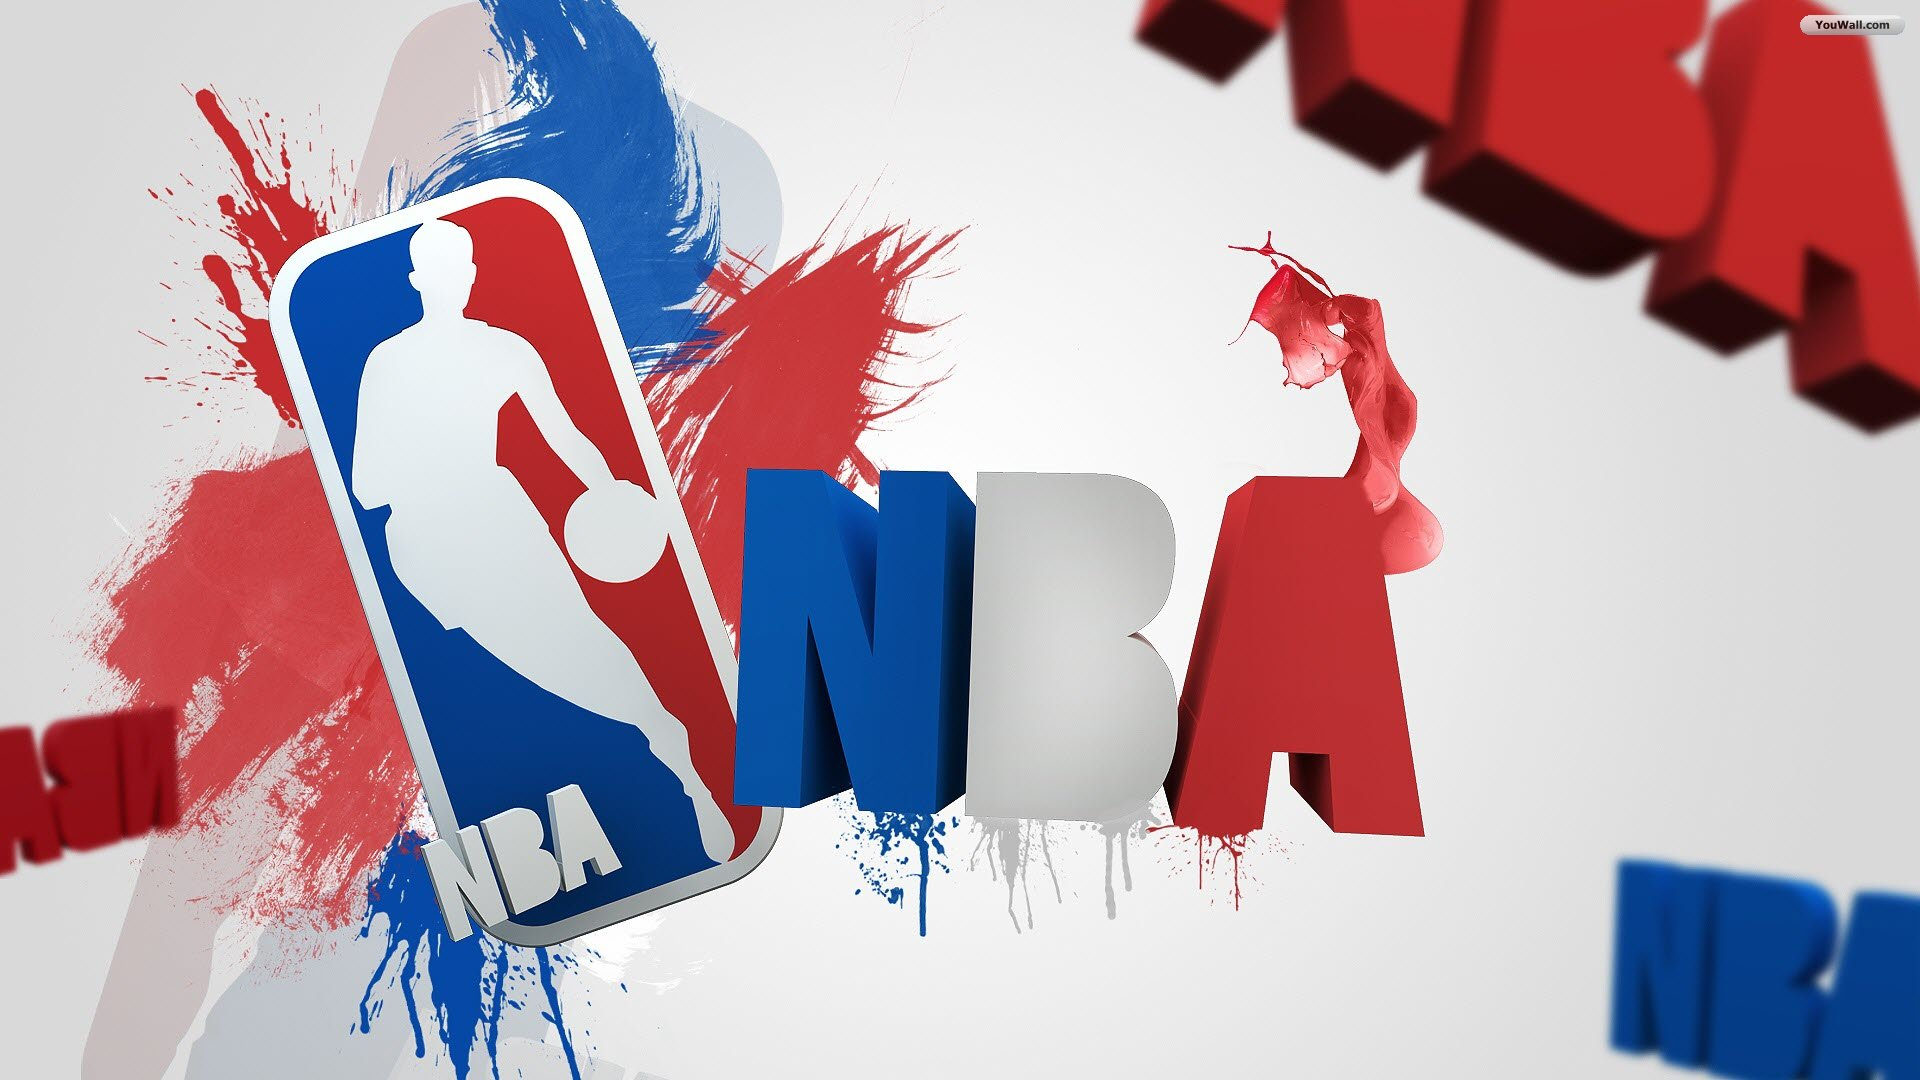 nba wallpaperjpg 1920x1080